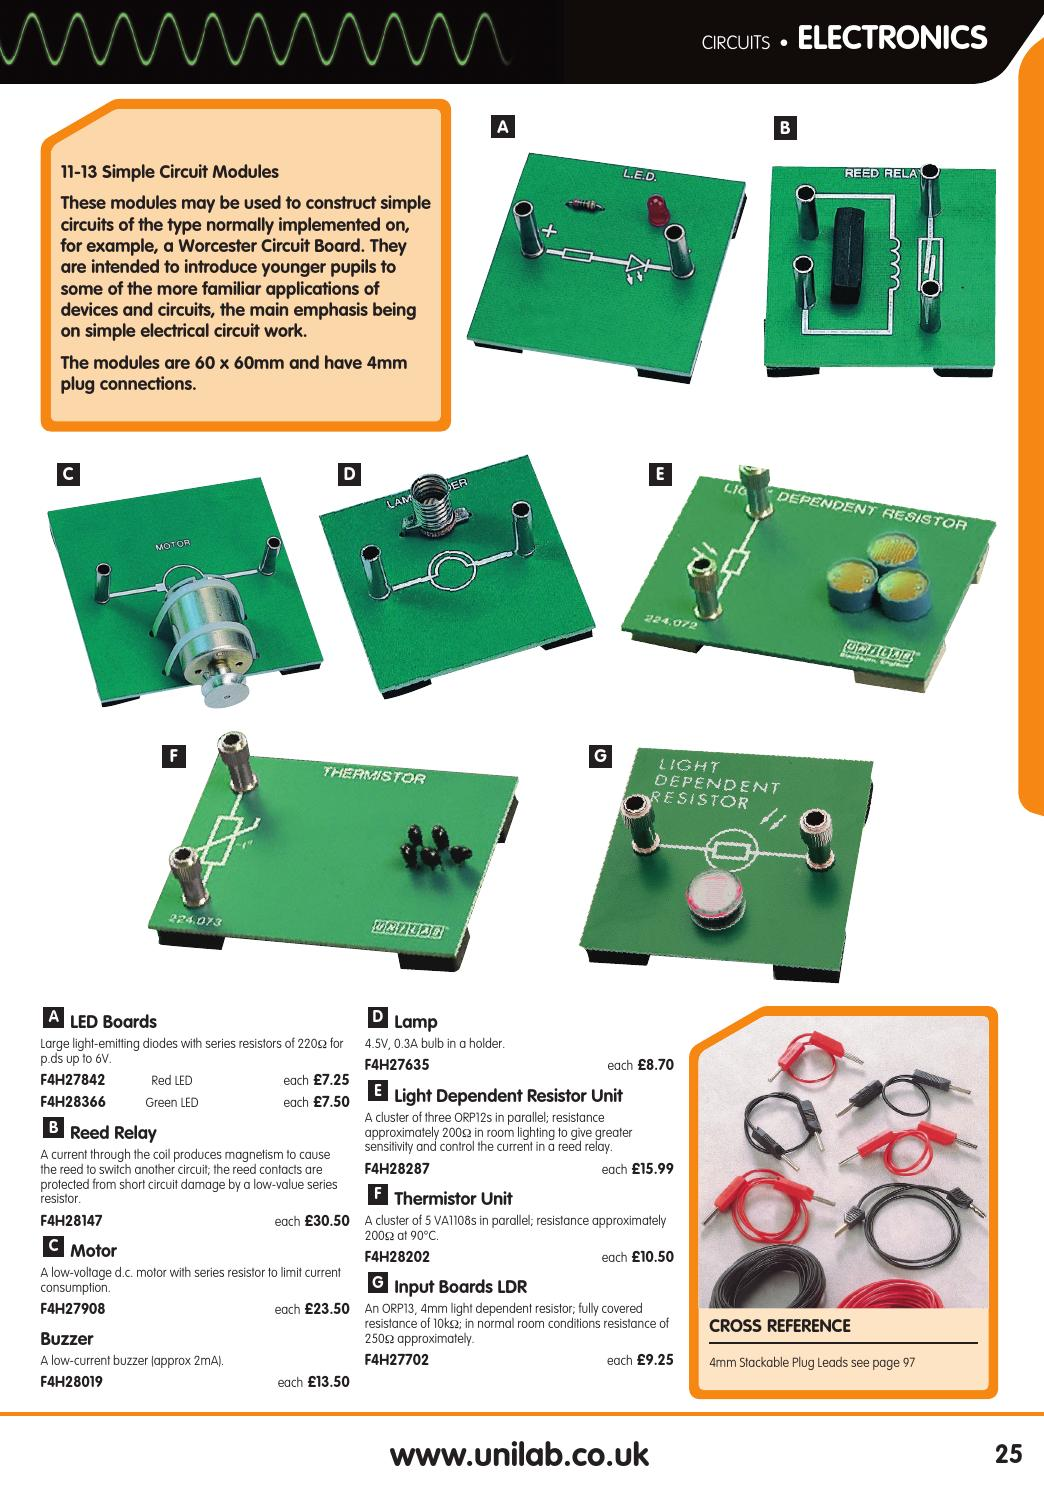 Unilab Catalogue 2016 17 By Findel Ltd Issuu Current Through Relay Coil